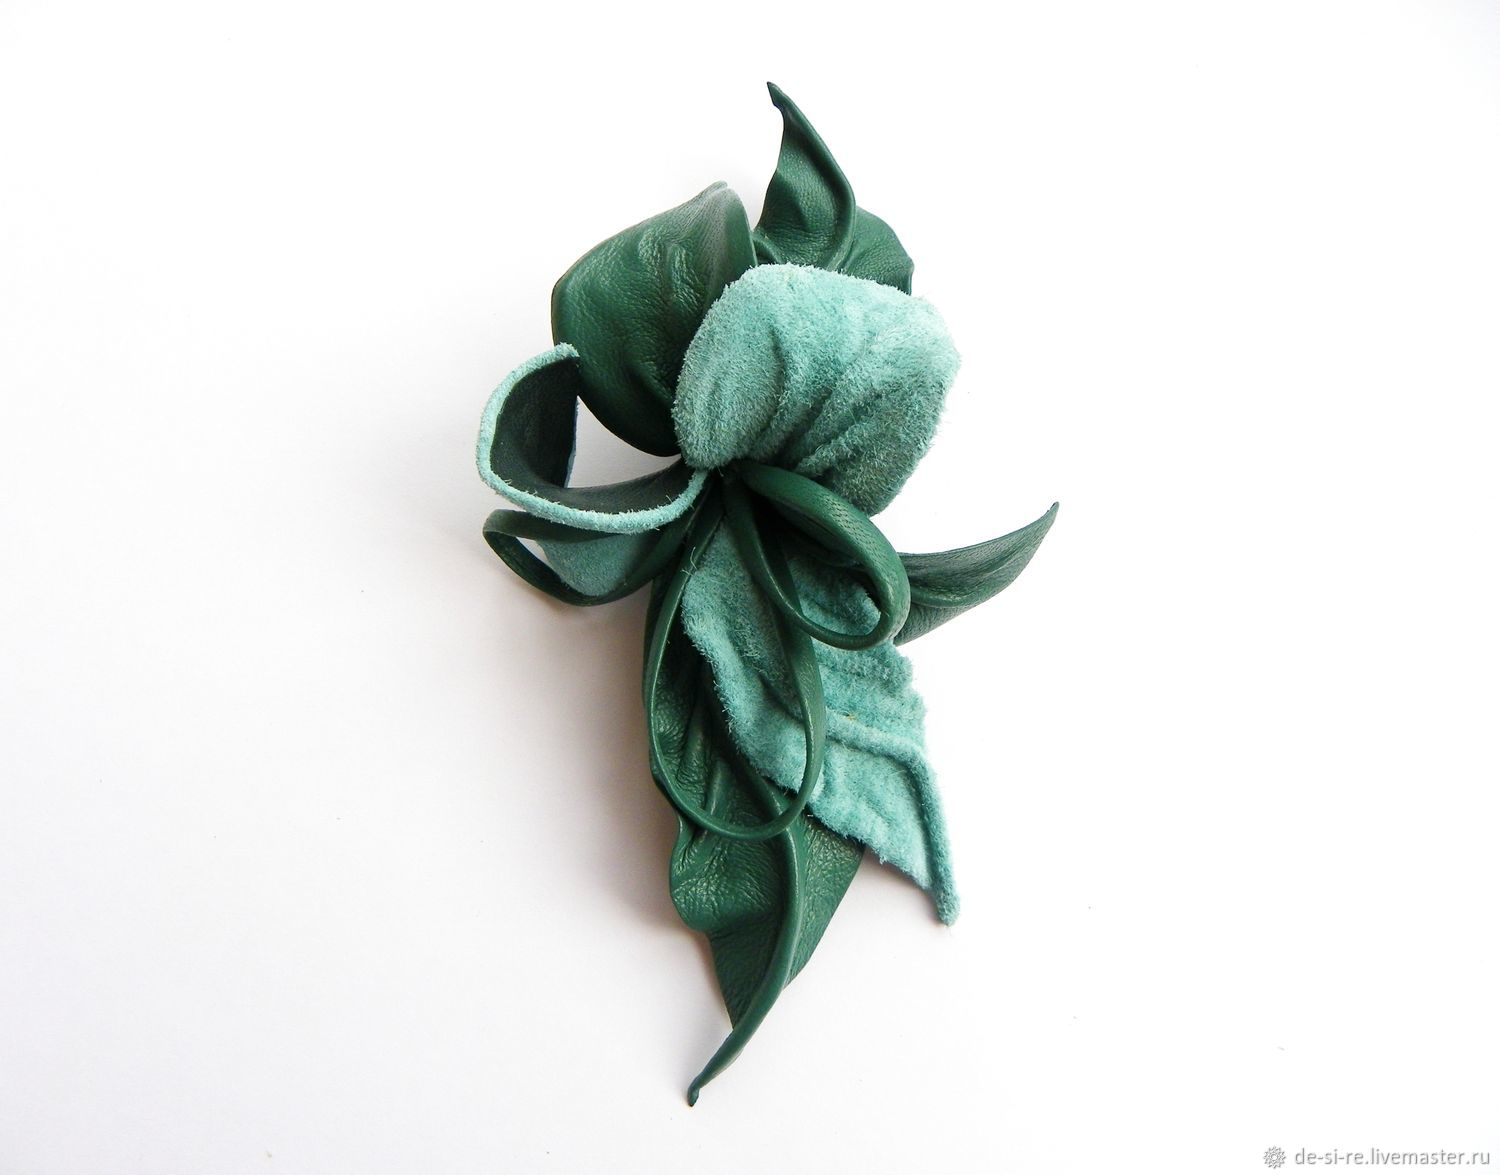 Brooch flower leather `Minty Fresh` minty emerald green with hinges. The brooch on the bag, belt, summer hat, coat, jacket, dress, scarf, shawl, scarf, tippet, outerwear. Gift woman girl.